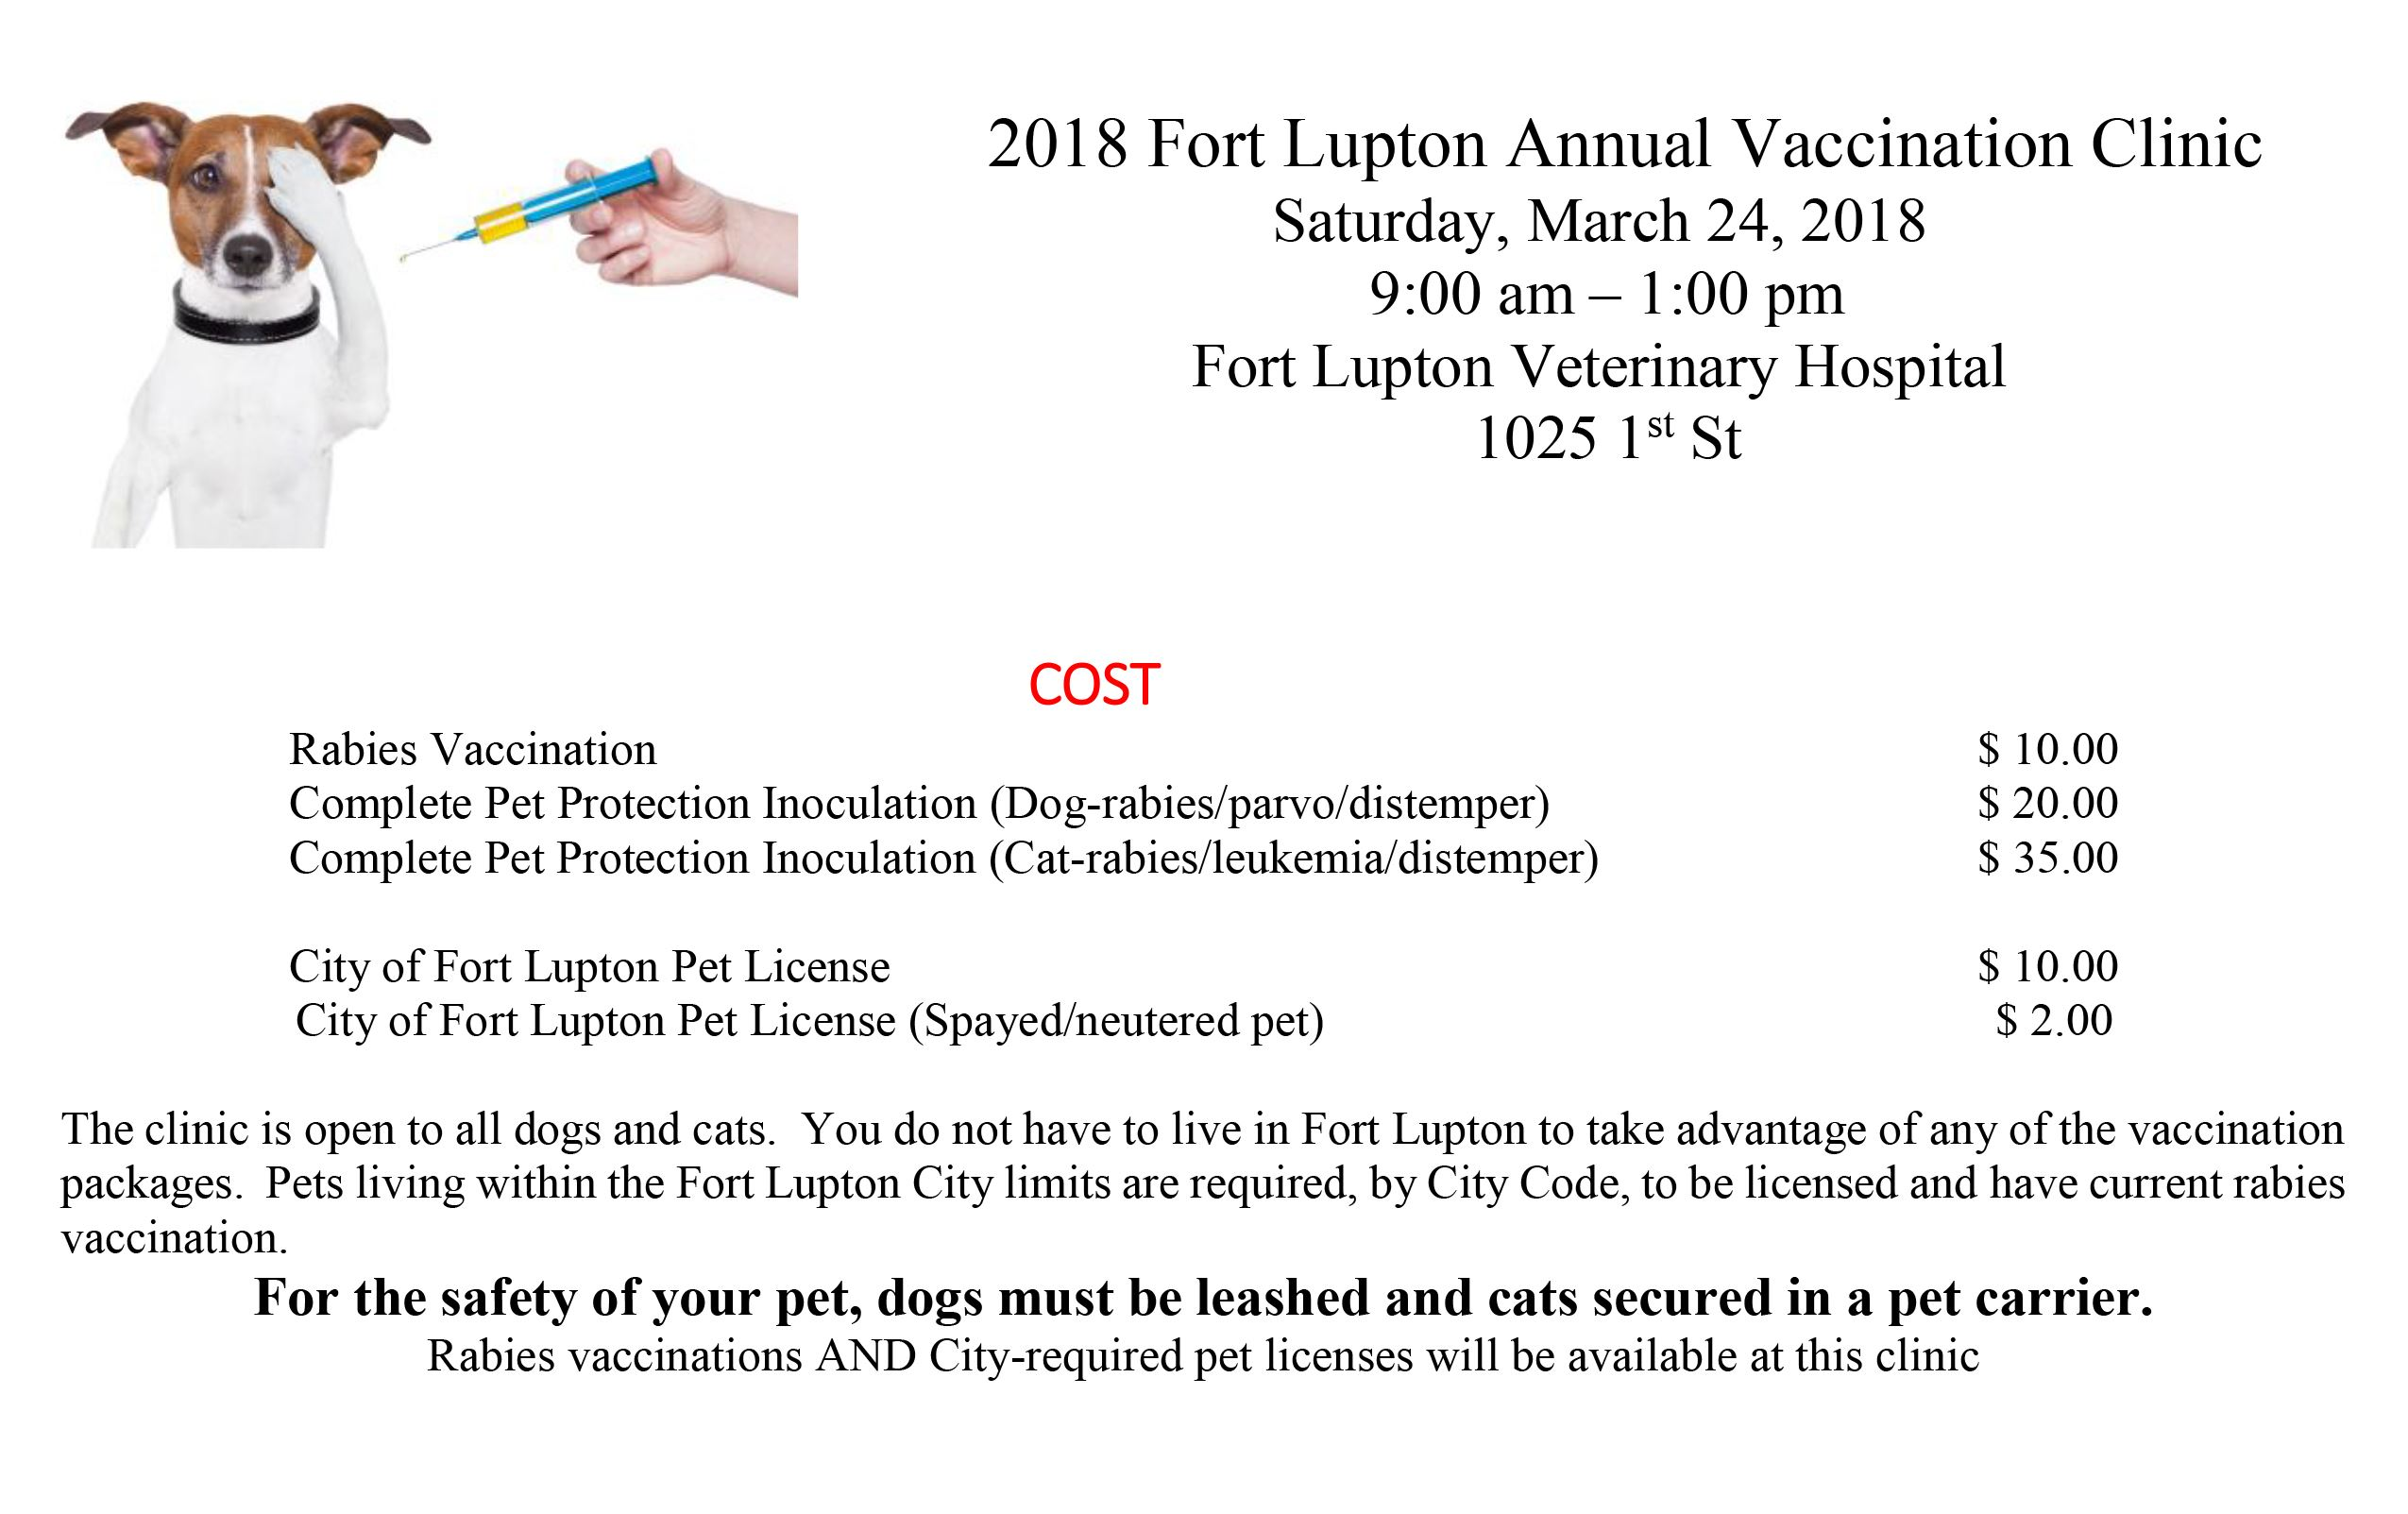 2018 Fort Lupton Annual Vaccination Clinic new one